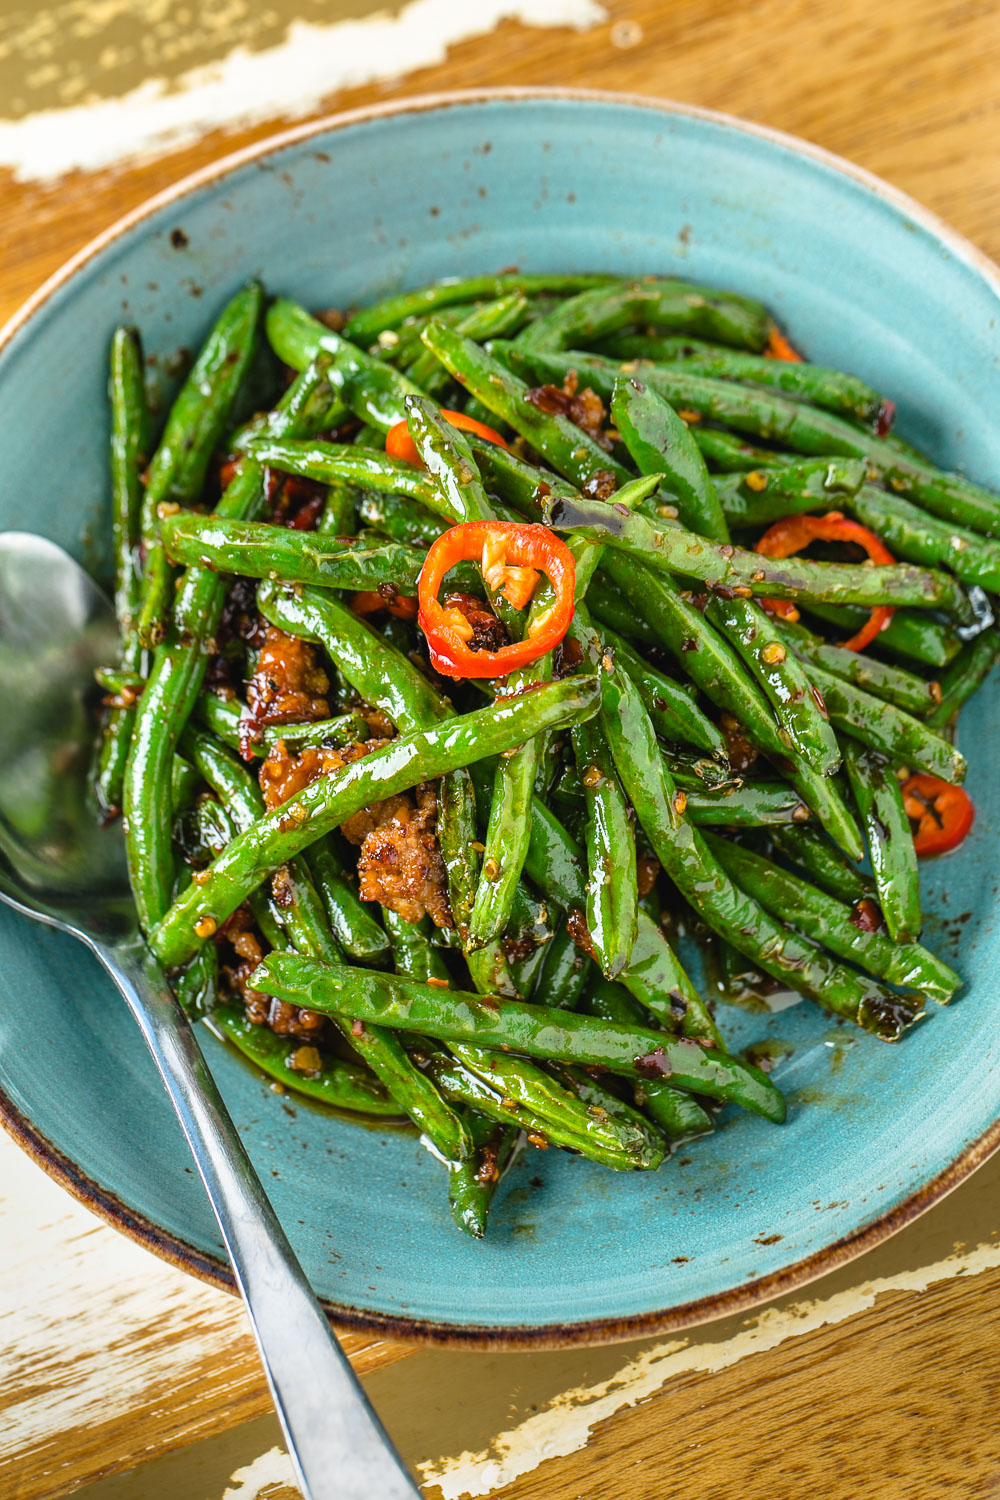 Le-Fat-Spicy-Green-Beans-Erik-Meadows